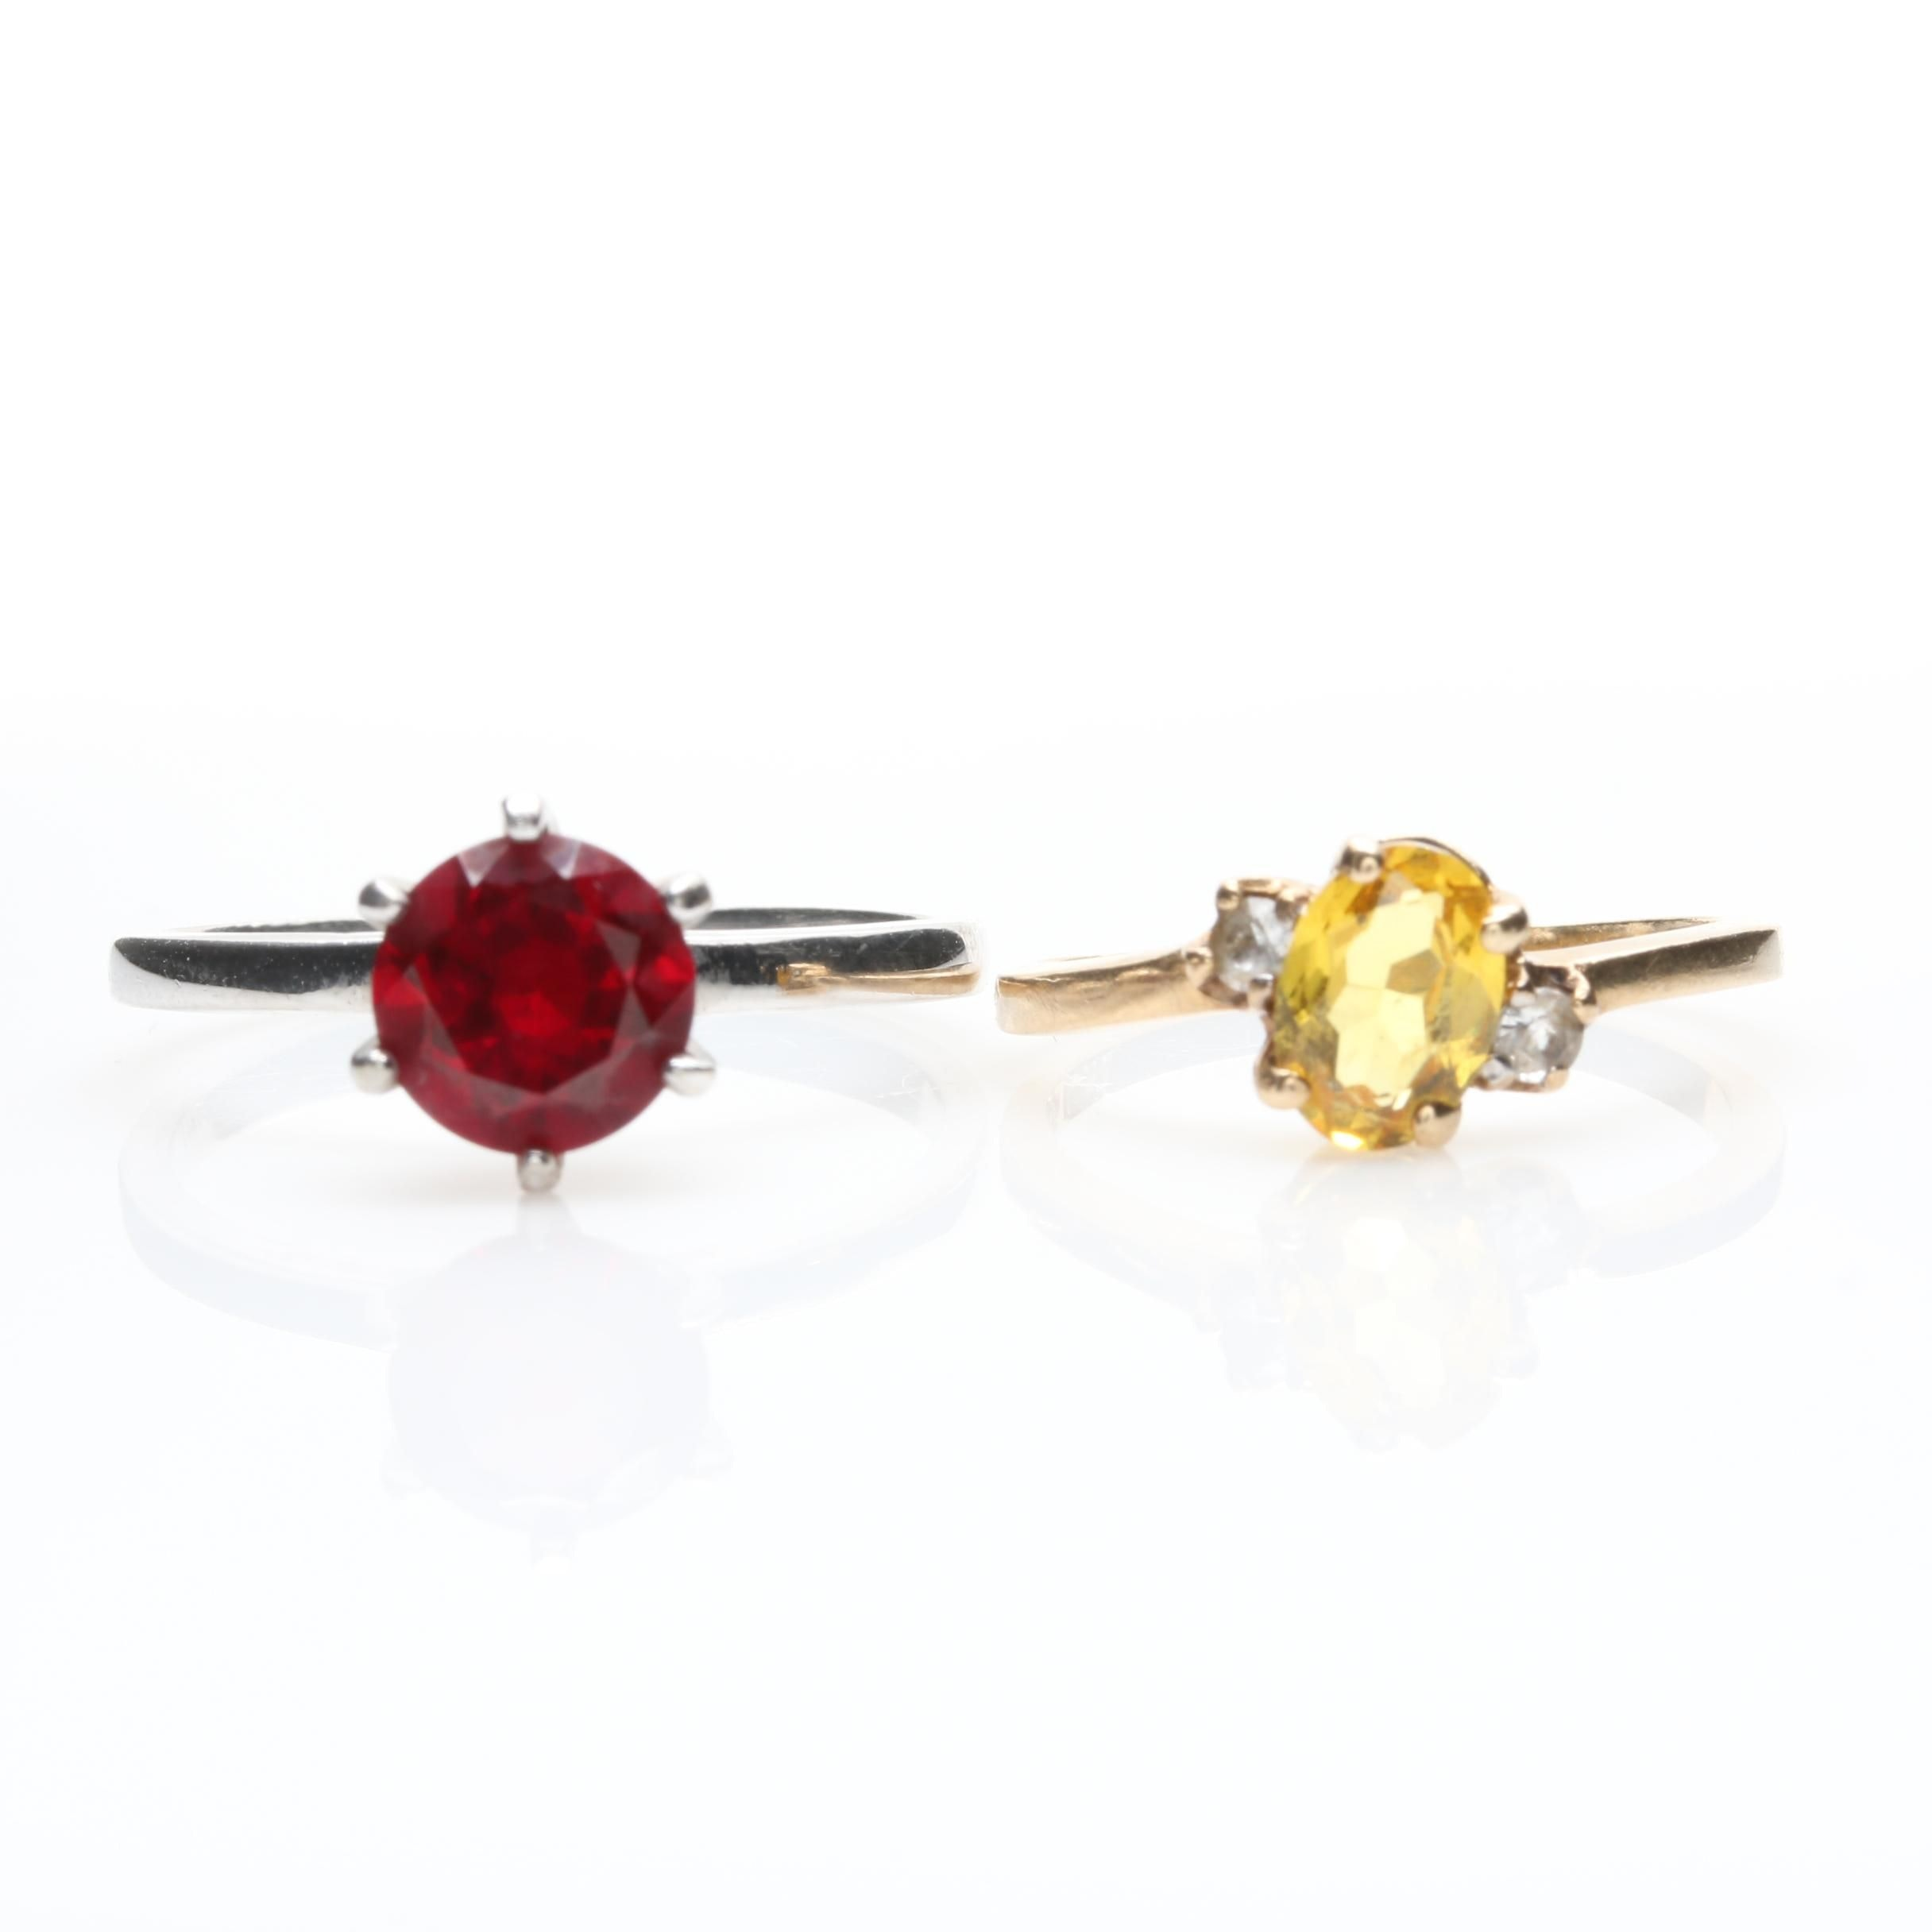 10K Gold Synthetic Yellow Sapphire, Topaz and Synthetic Ruby Rings